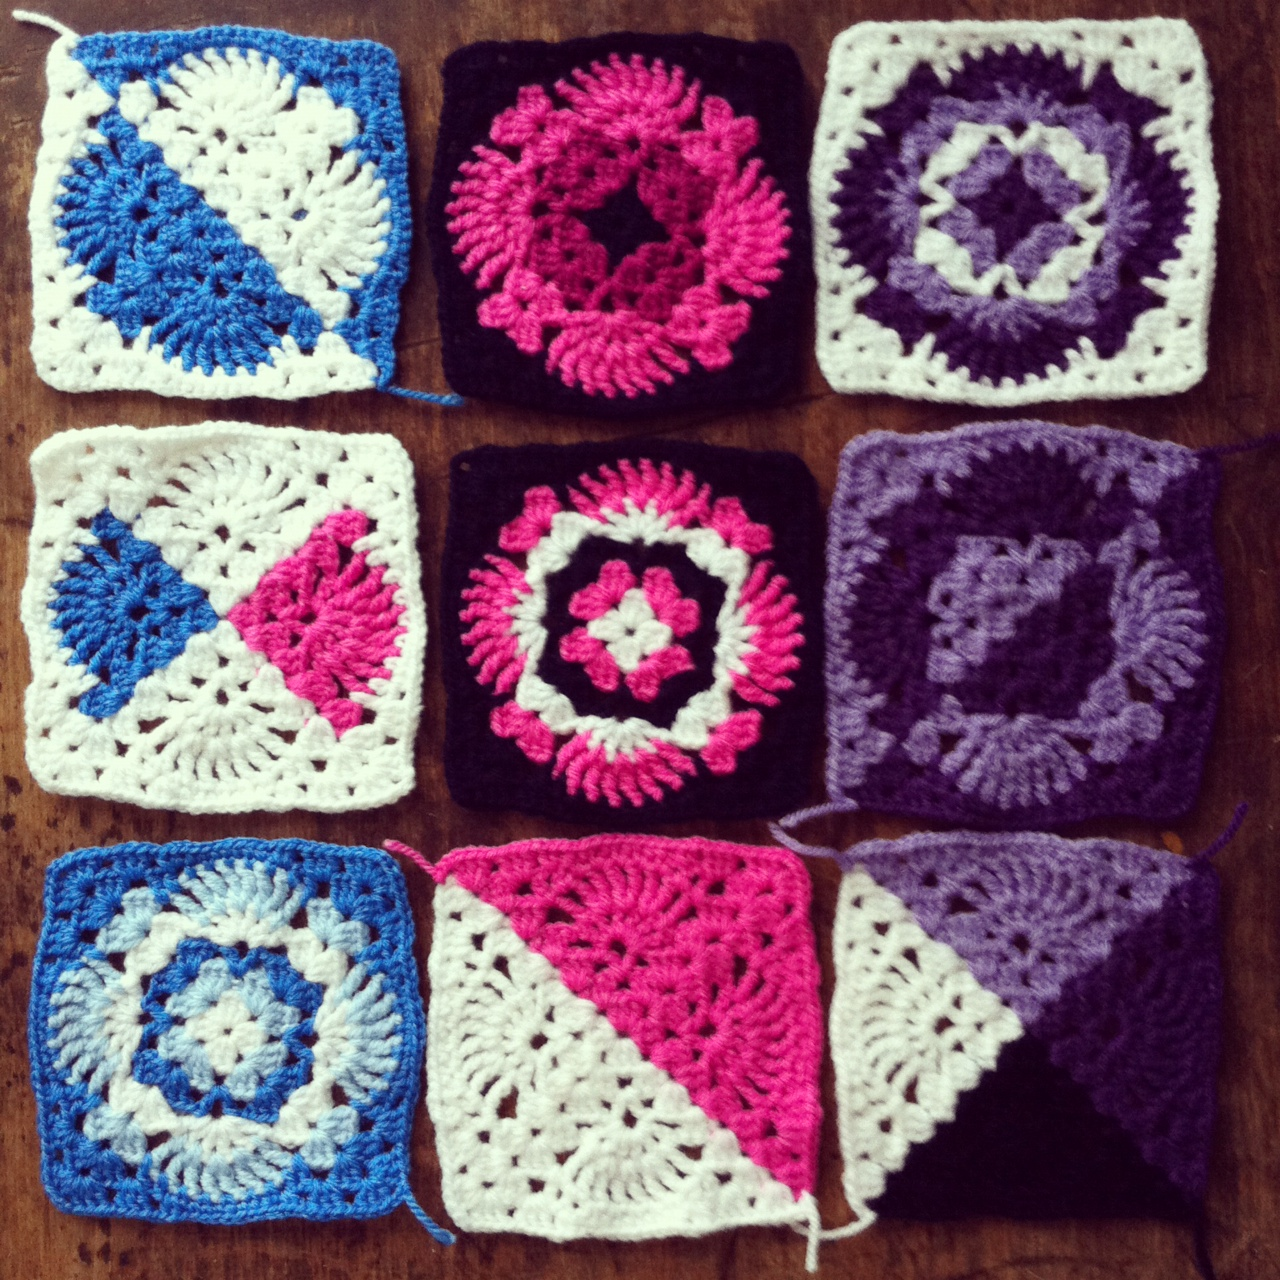 Bright Bag: Lacy granny square